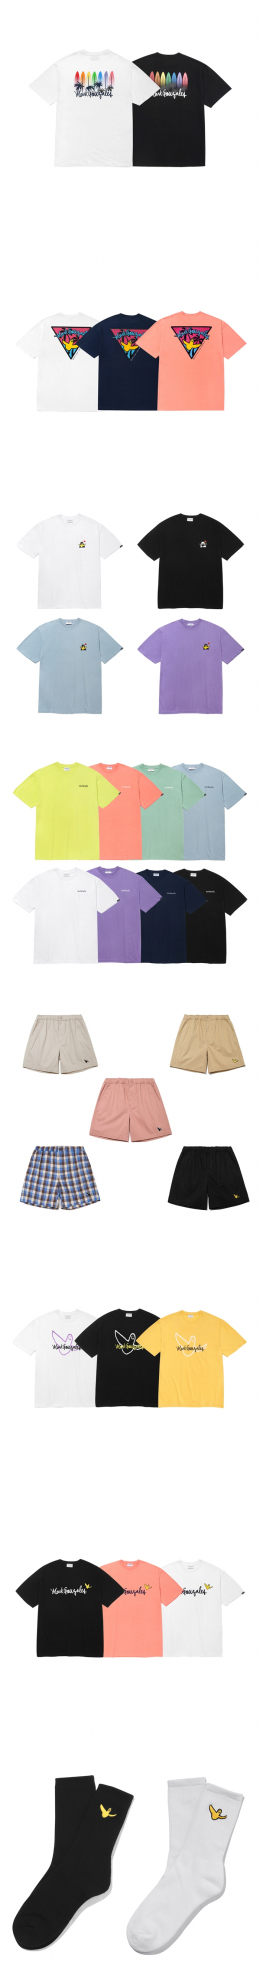 20SUMMER 2nd delivery